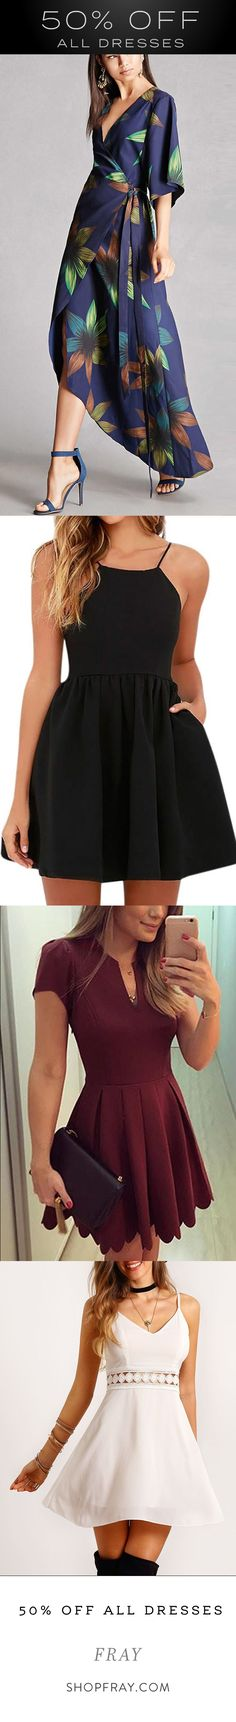 Fall Dresses For Women Herbstkleider Für Frauen Robes D'Automne Pour Les Femmes Vestidos De Otoño Para Mujer - Simple Dresses, Pretty Dresses, Beautiful Dresses, Casual Dresses, Fashion Dresses, Summer Dresses, Mini Dresses, Daytime Dresses, Dresses Dresses